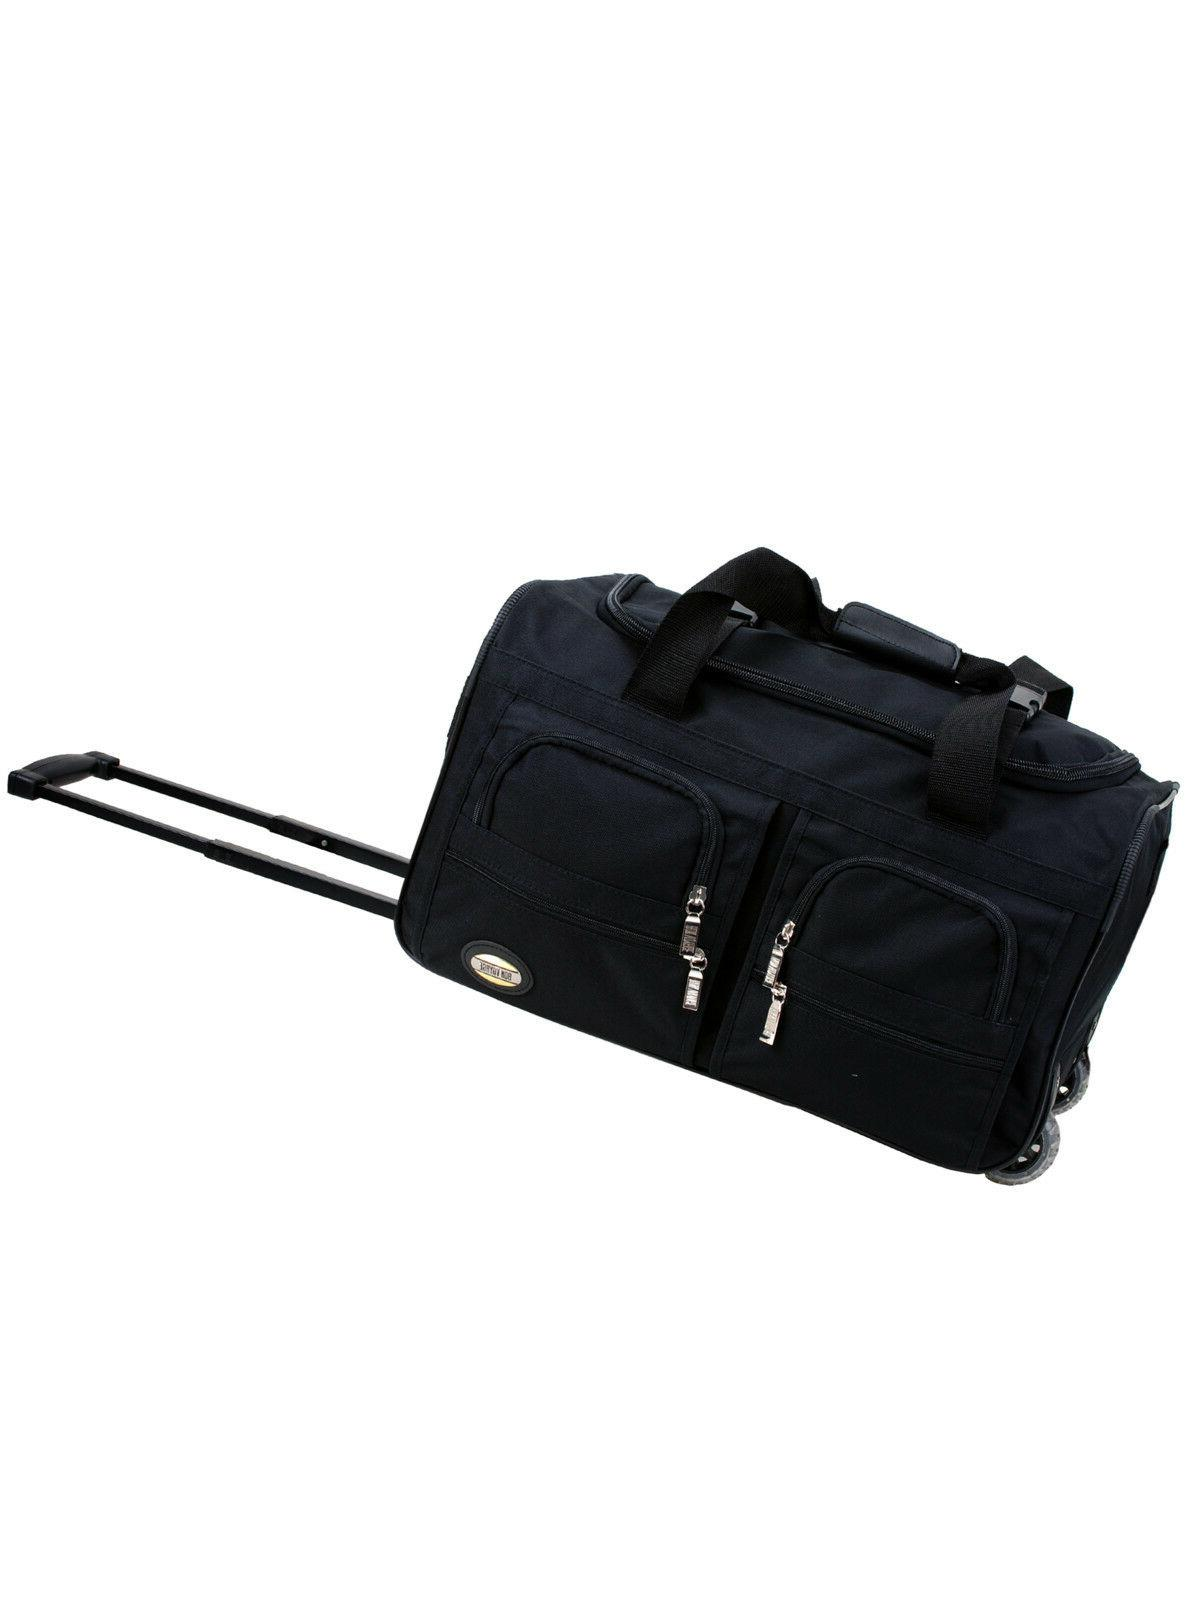 ROCKLAND PC ABS LUGGAGE